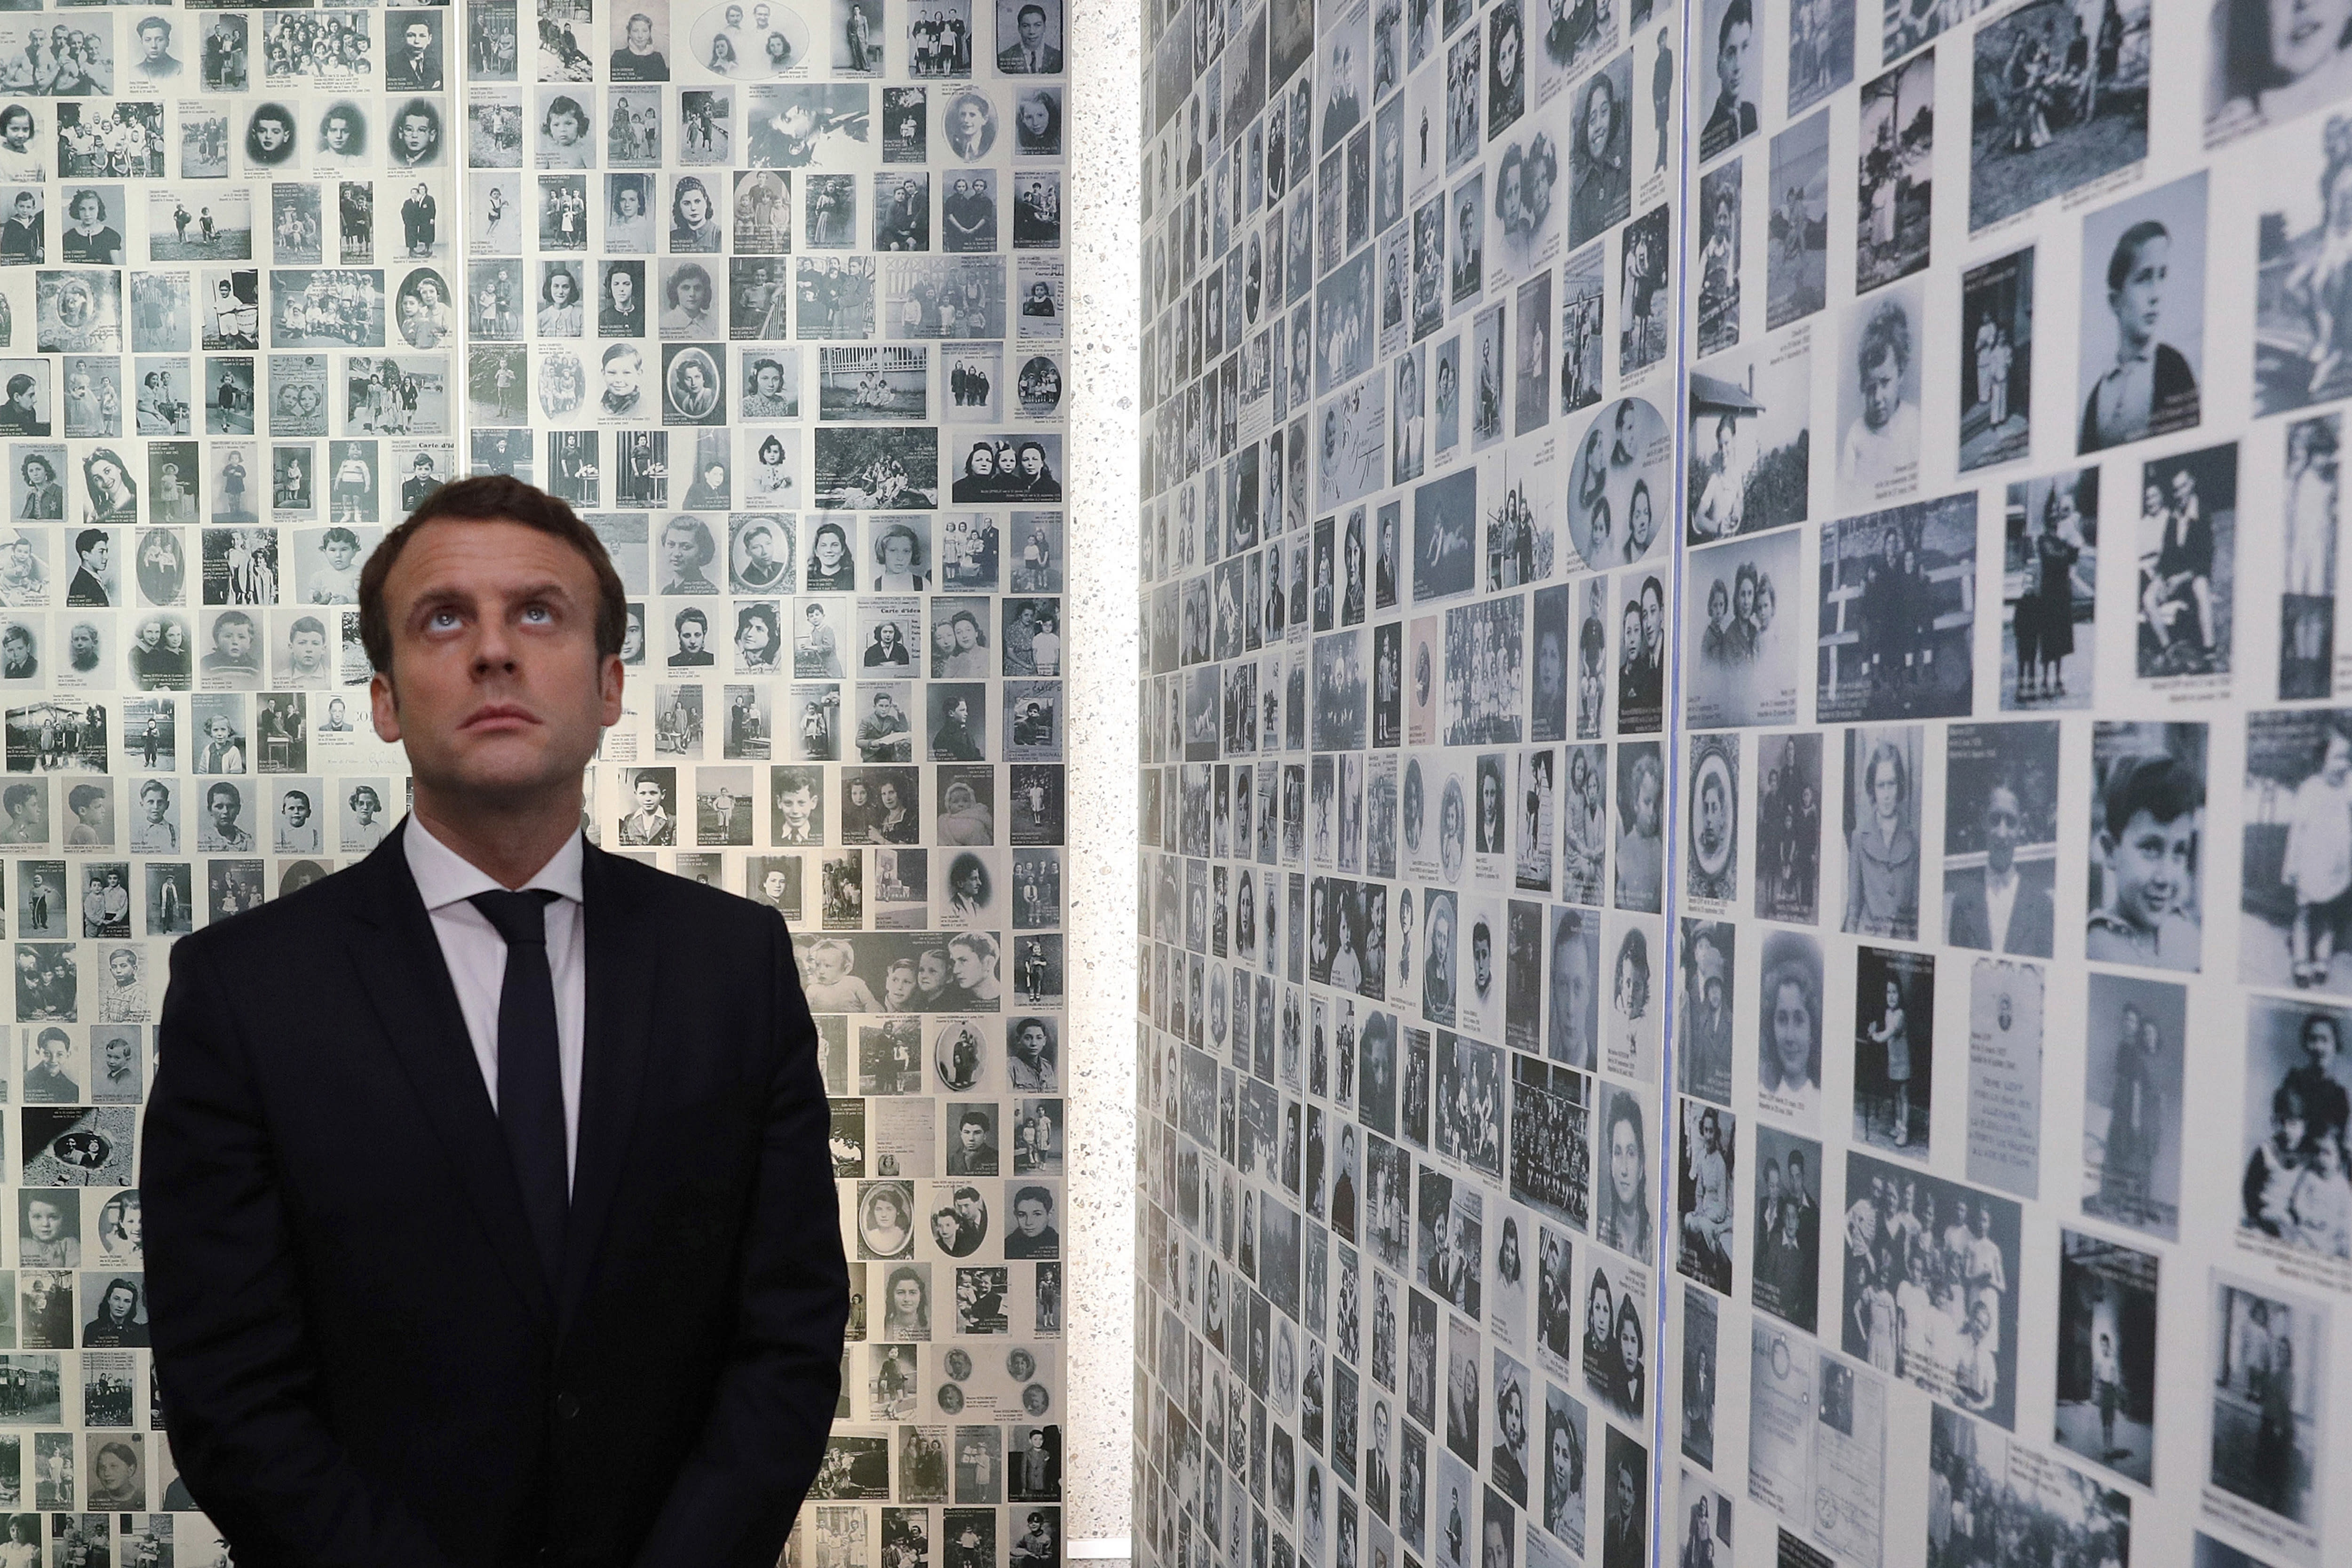 FILE - In this Sunday, April 30, 2017 file picture, independent centrist presidential candidate Emmanuel Macron looks at some of the 2,500 photographs of young Jews deported from France, during a visit to the Shoah memorial in Paris, France. France's prime minister is sounding the alarm over a sharp rise in anti-Semitic acts this year, pledging to increase efforts to punish perpetrators and police hate speech online.(Philippe Wojazer/Pool Photo via AP, File)